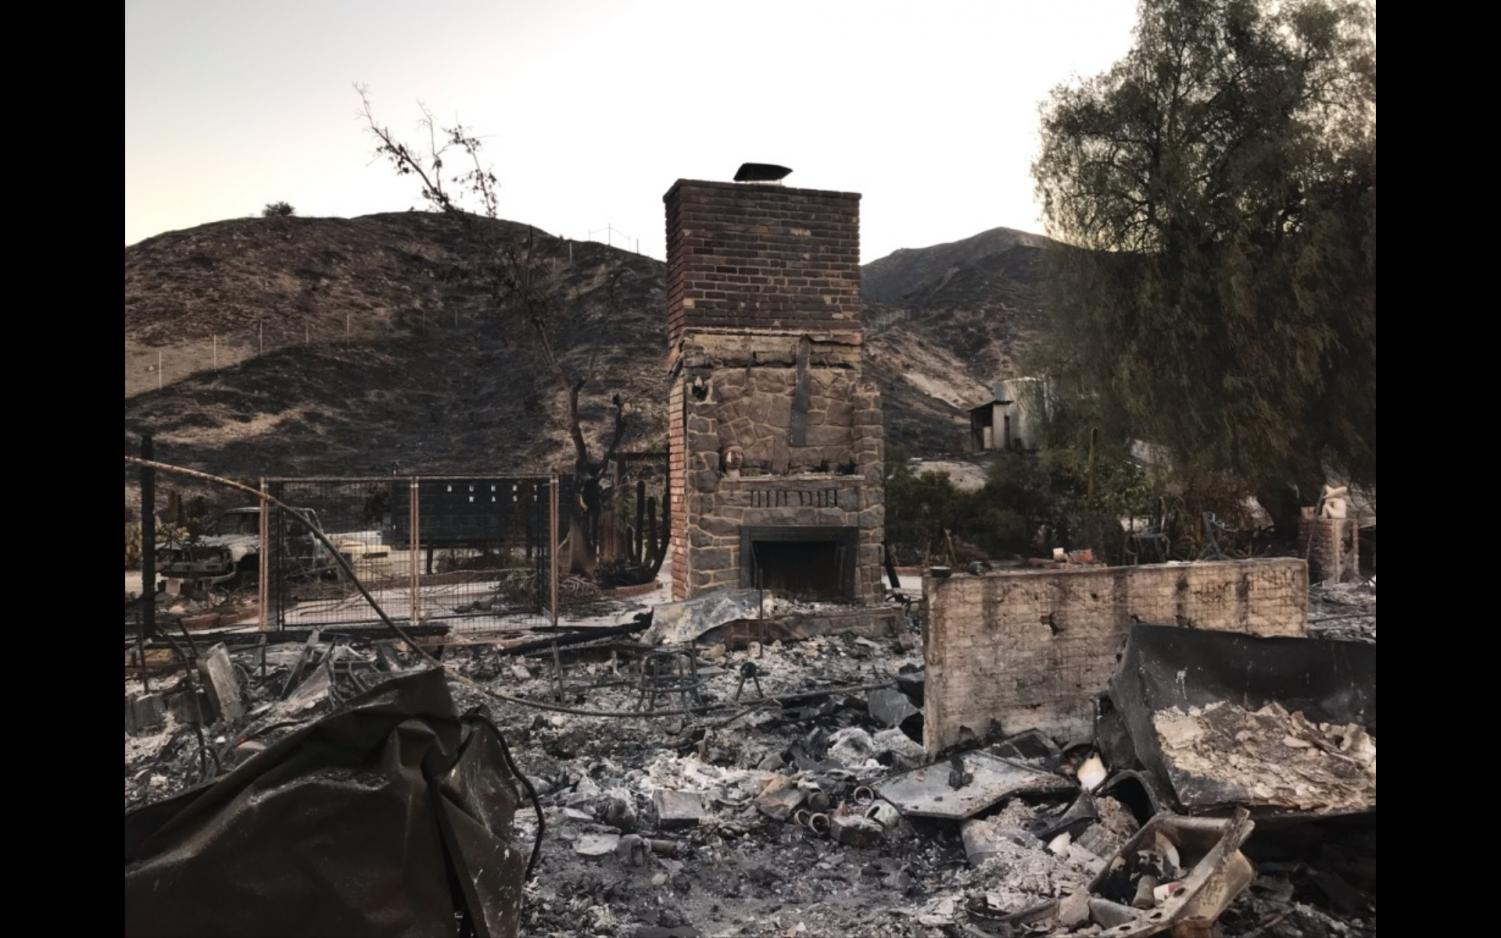 Robin Thompson's home in Santa Clarita after the Tick Fire.